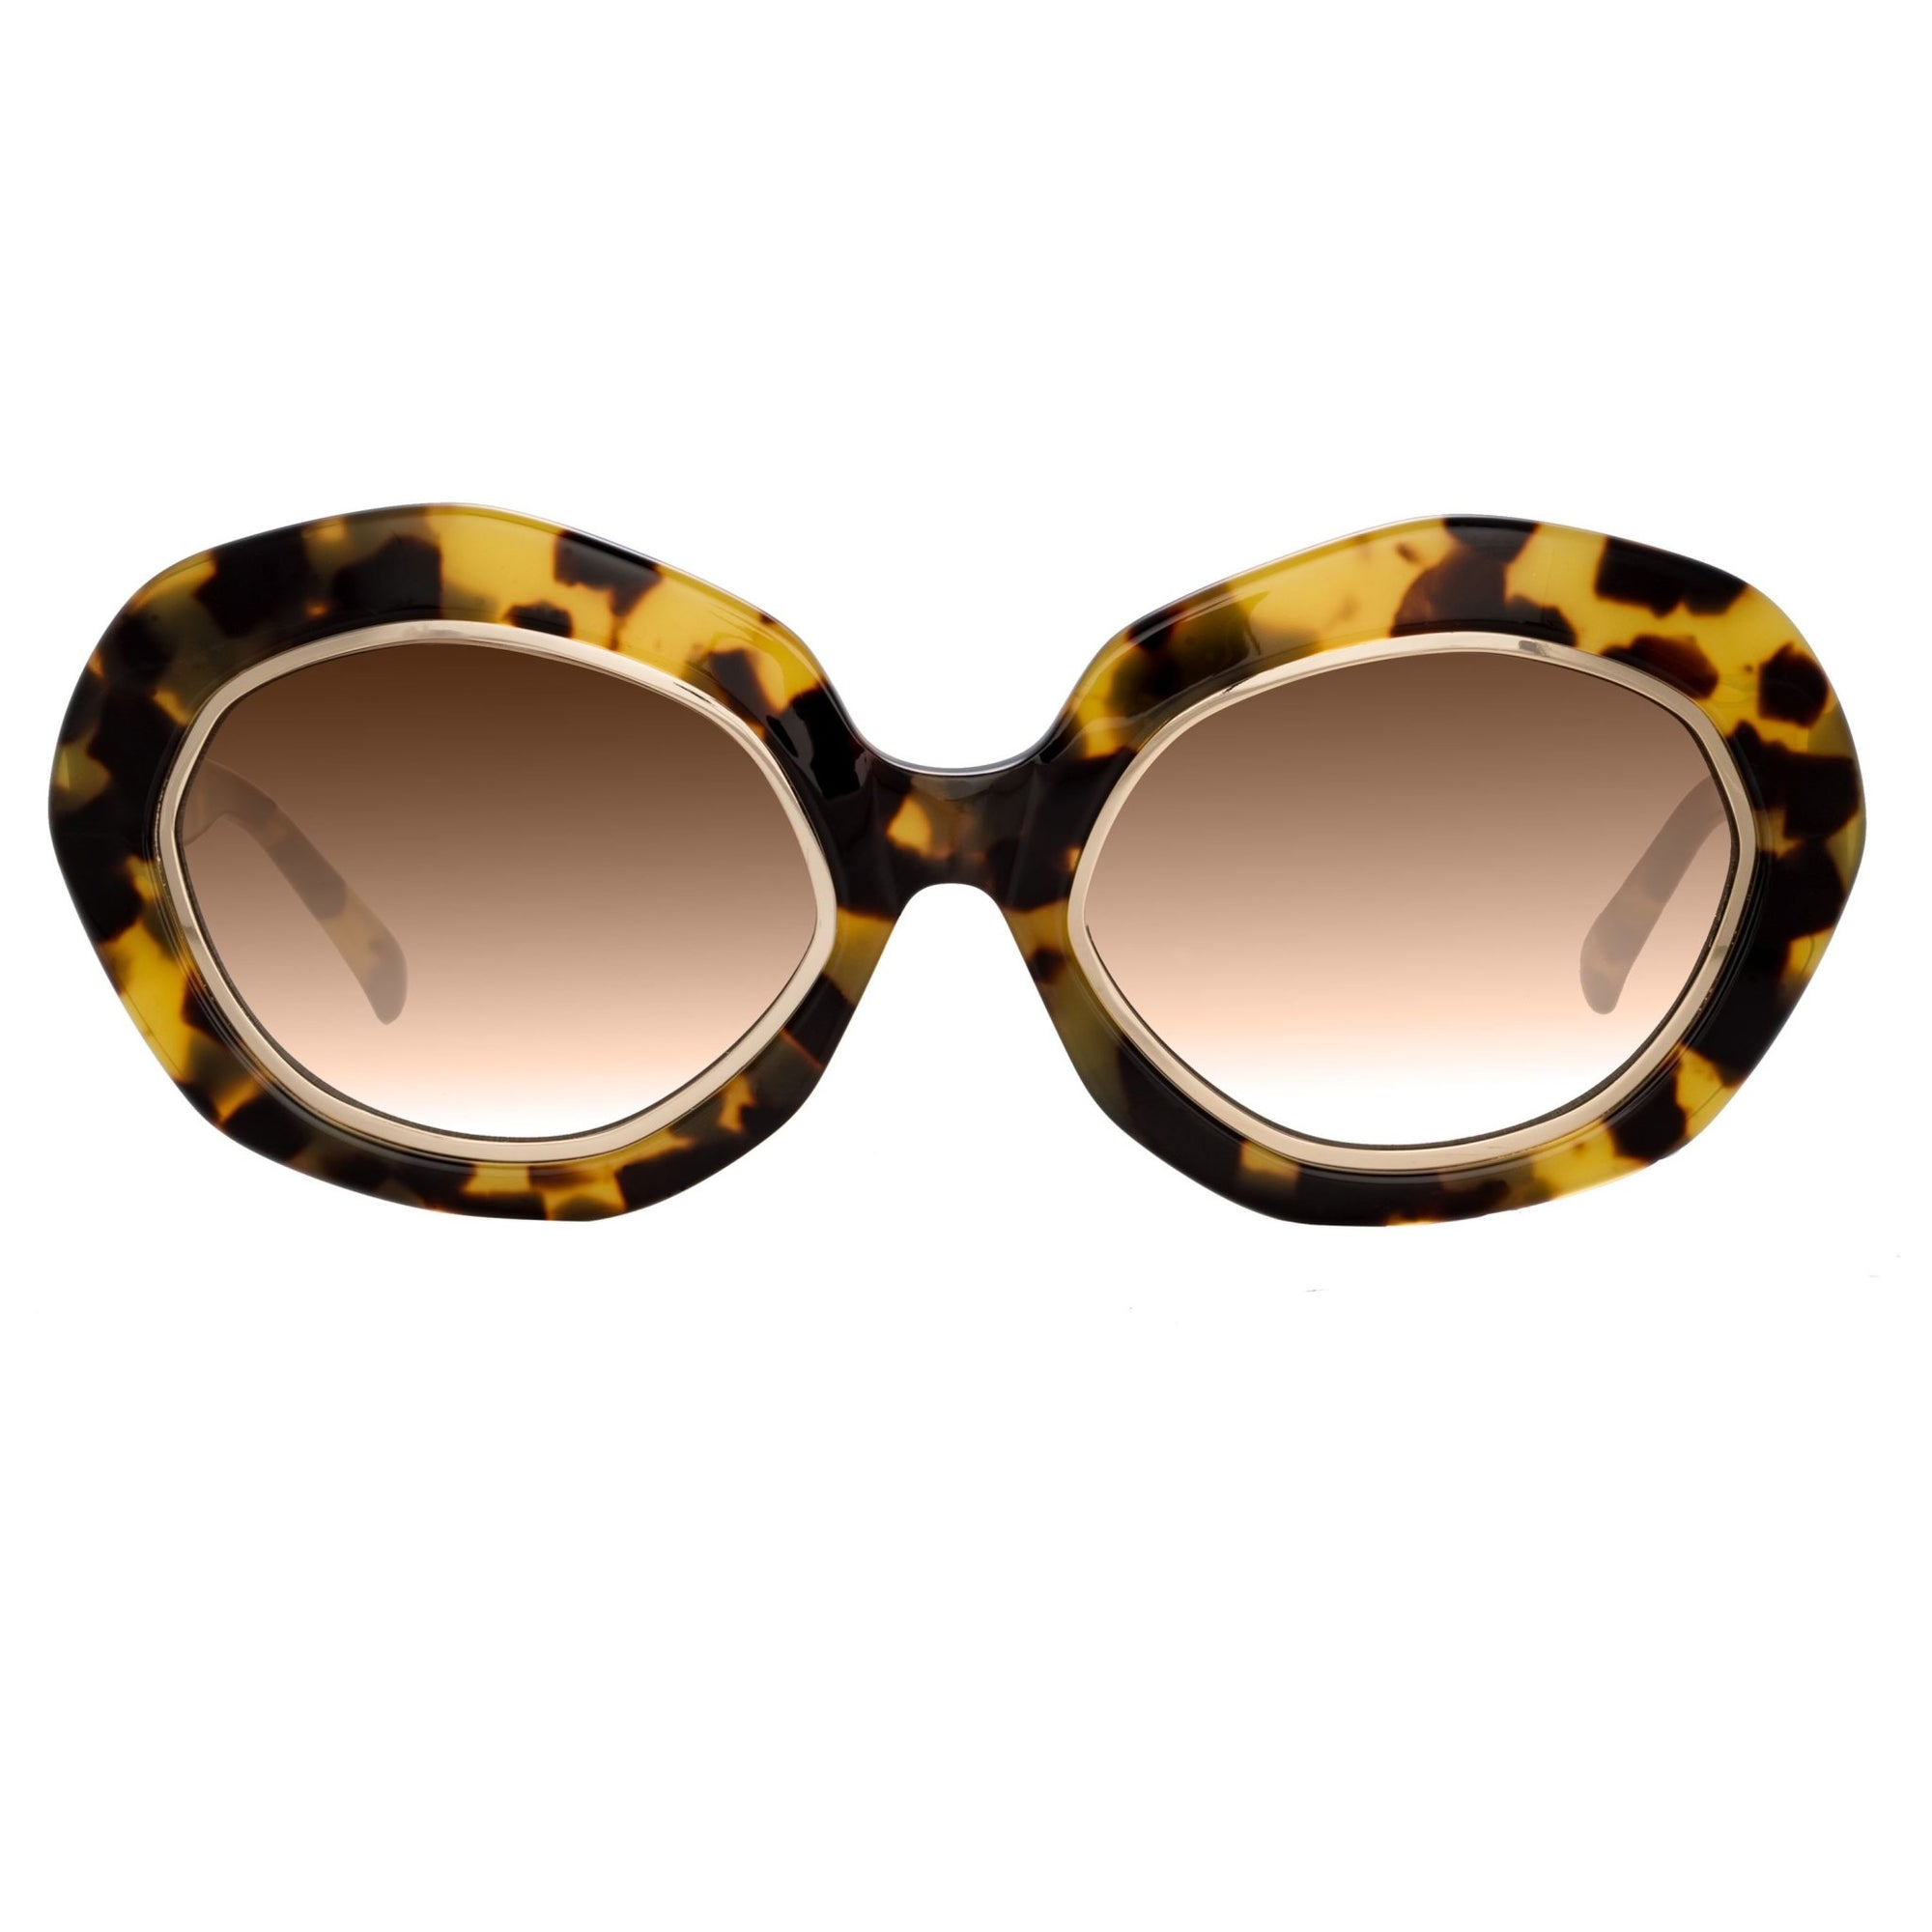 Erdem Women Sunglasses Oversized Tortoise Shell Gold with Brown Graduated Lenses EDM33C4SUN - Watches & Crystals